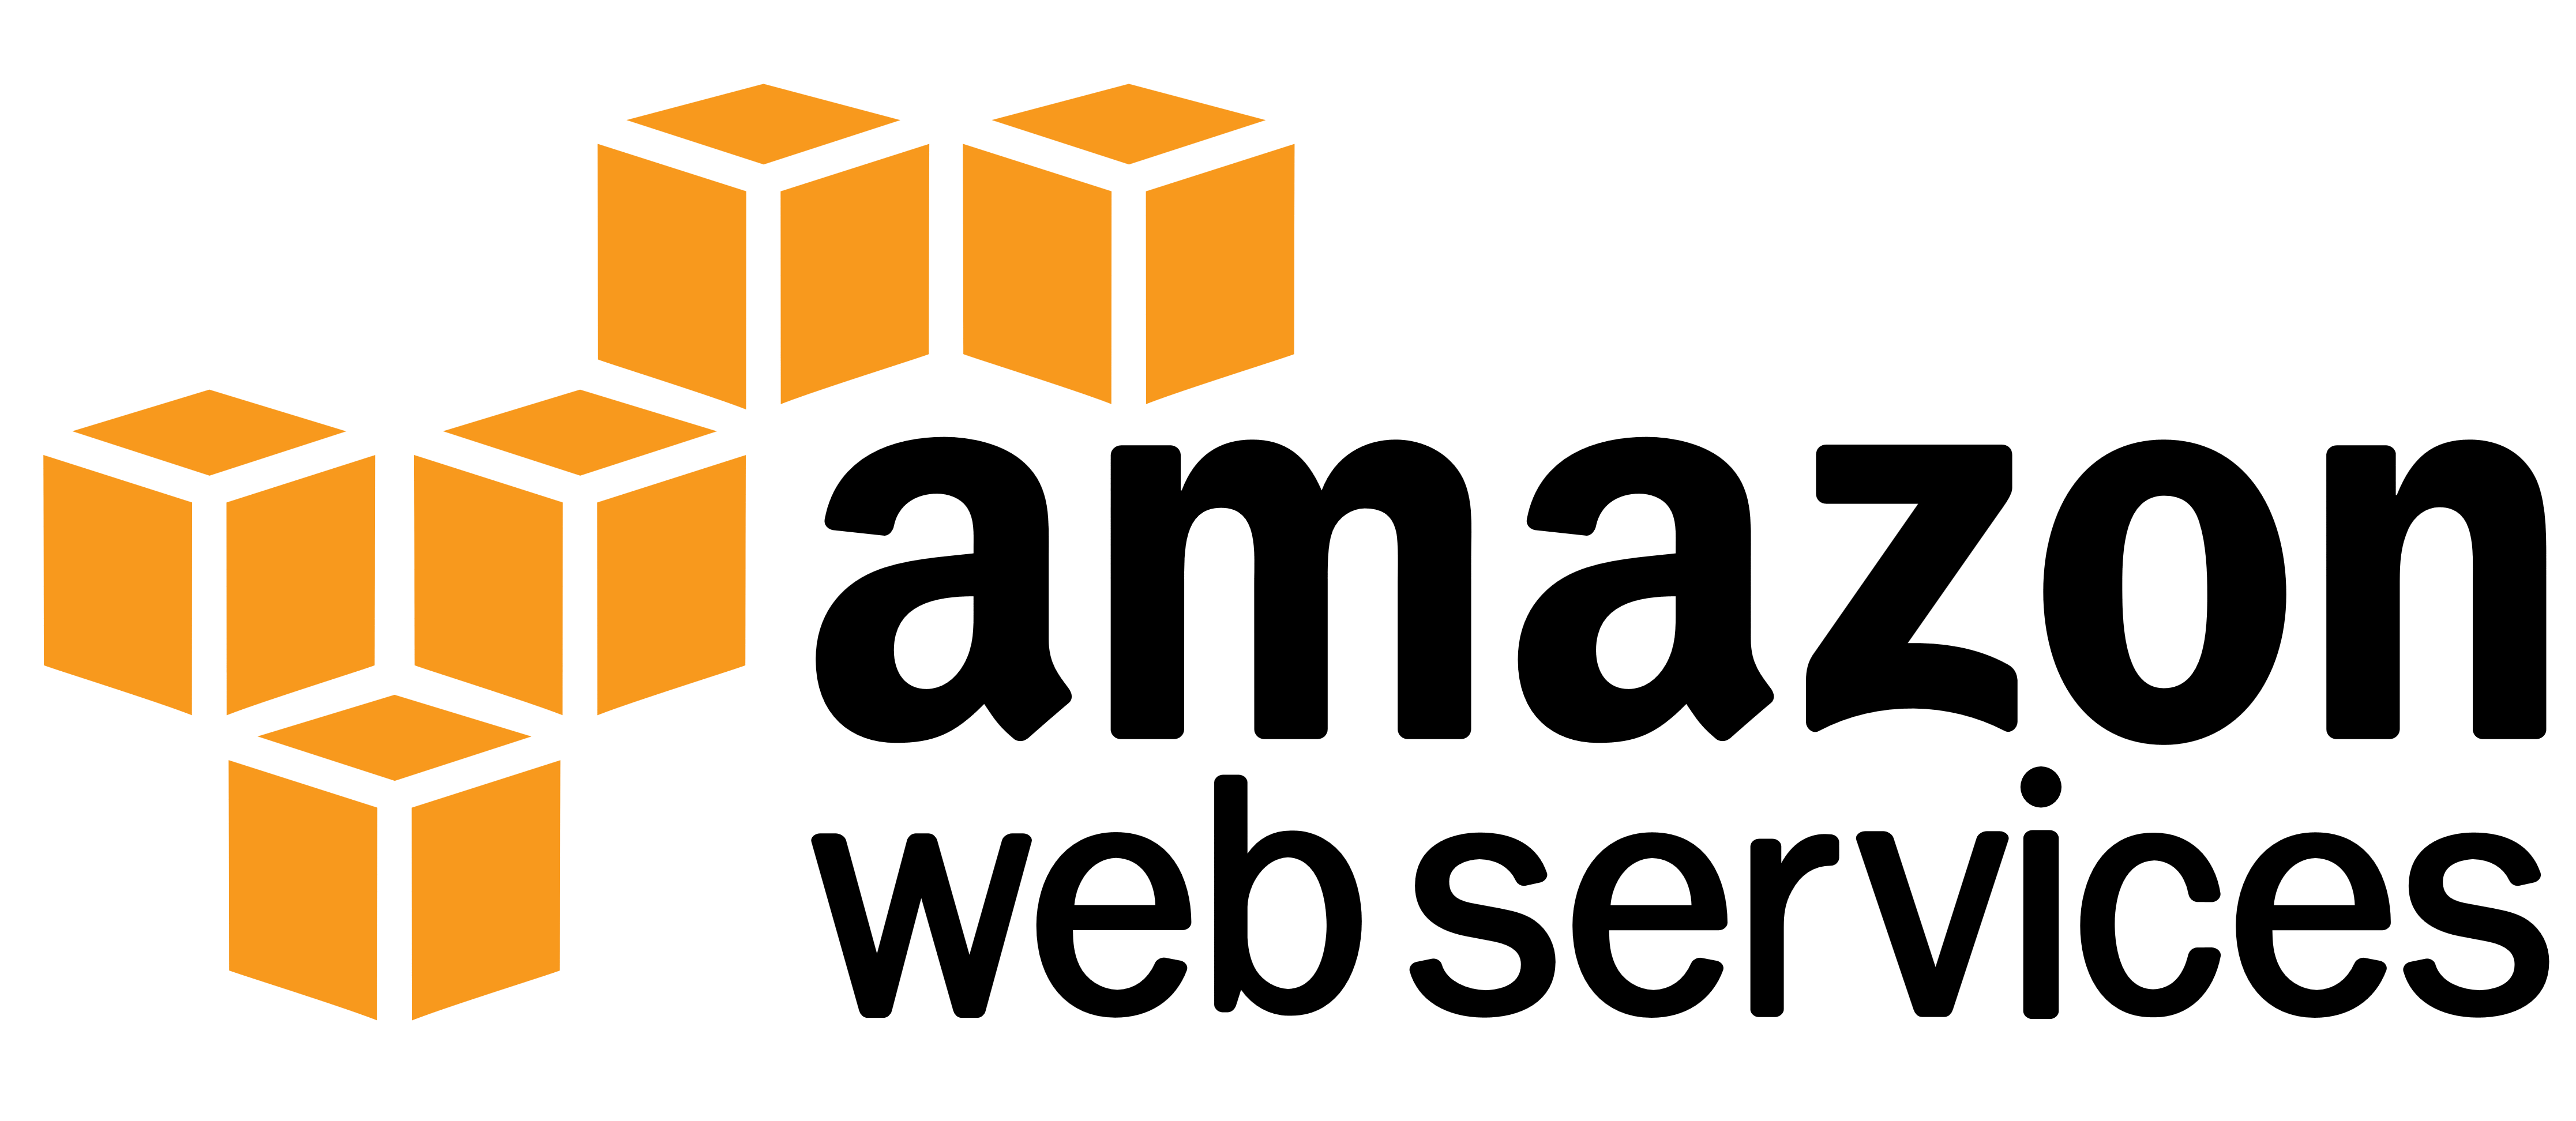 Bongohive Partners With Amazon Web Services Offering Free. Types Of Rehabilitation Programs. Florida Hospital College Nursing. Top Marketing Companies In Nyc. Extended Vehicle Warranty Prices. Credit Cards With Rewards Points. Free Capacity Planning Tools. Fine For Driving Without Insurance. United Mileage Plus Calculator